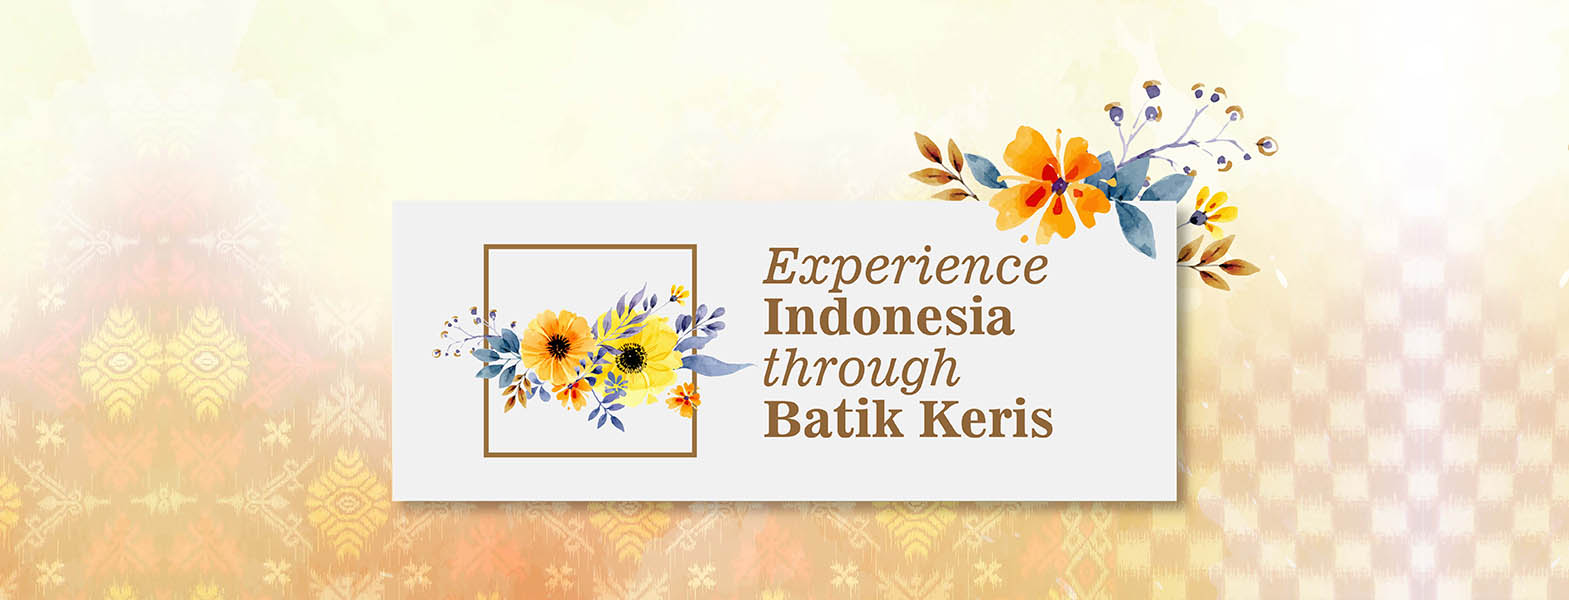 Experience Indonesia through Batik Keris